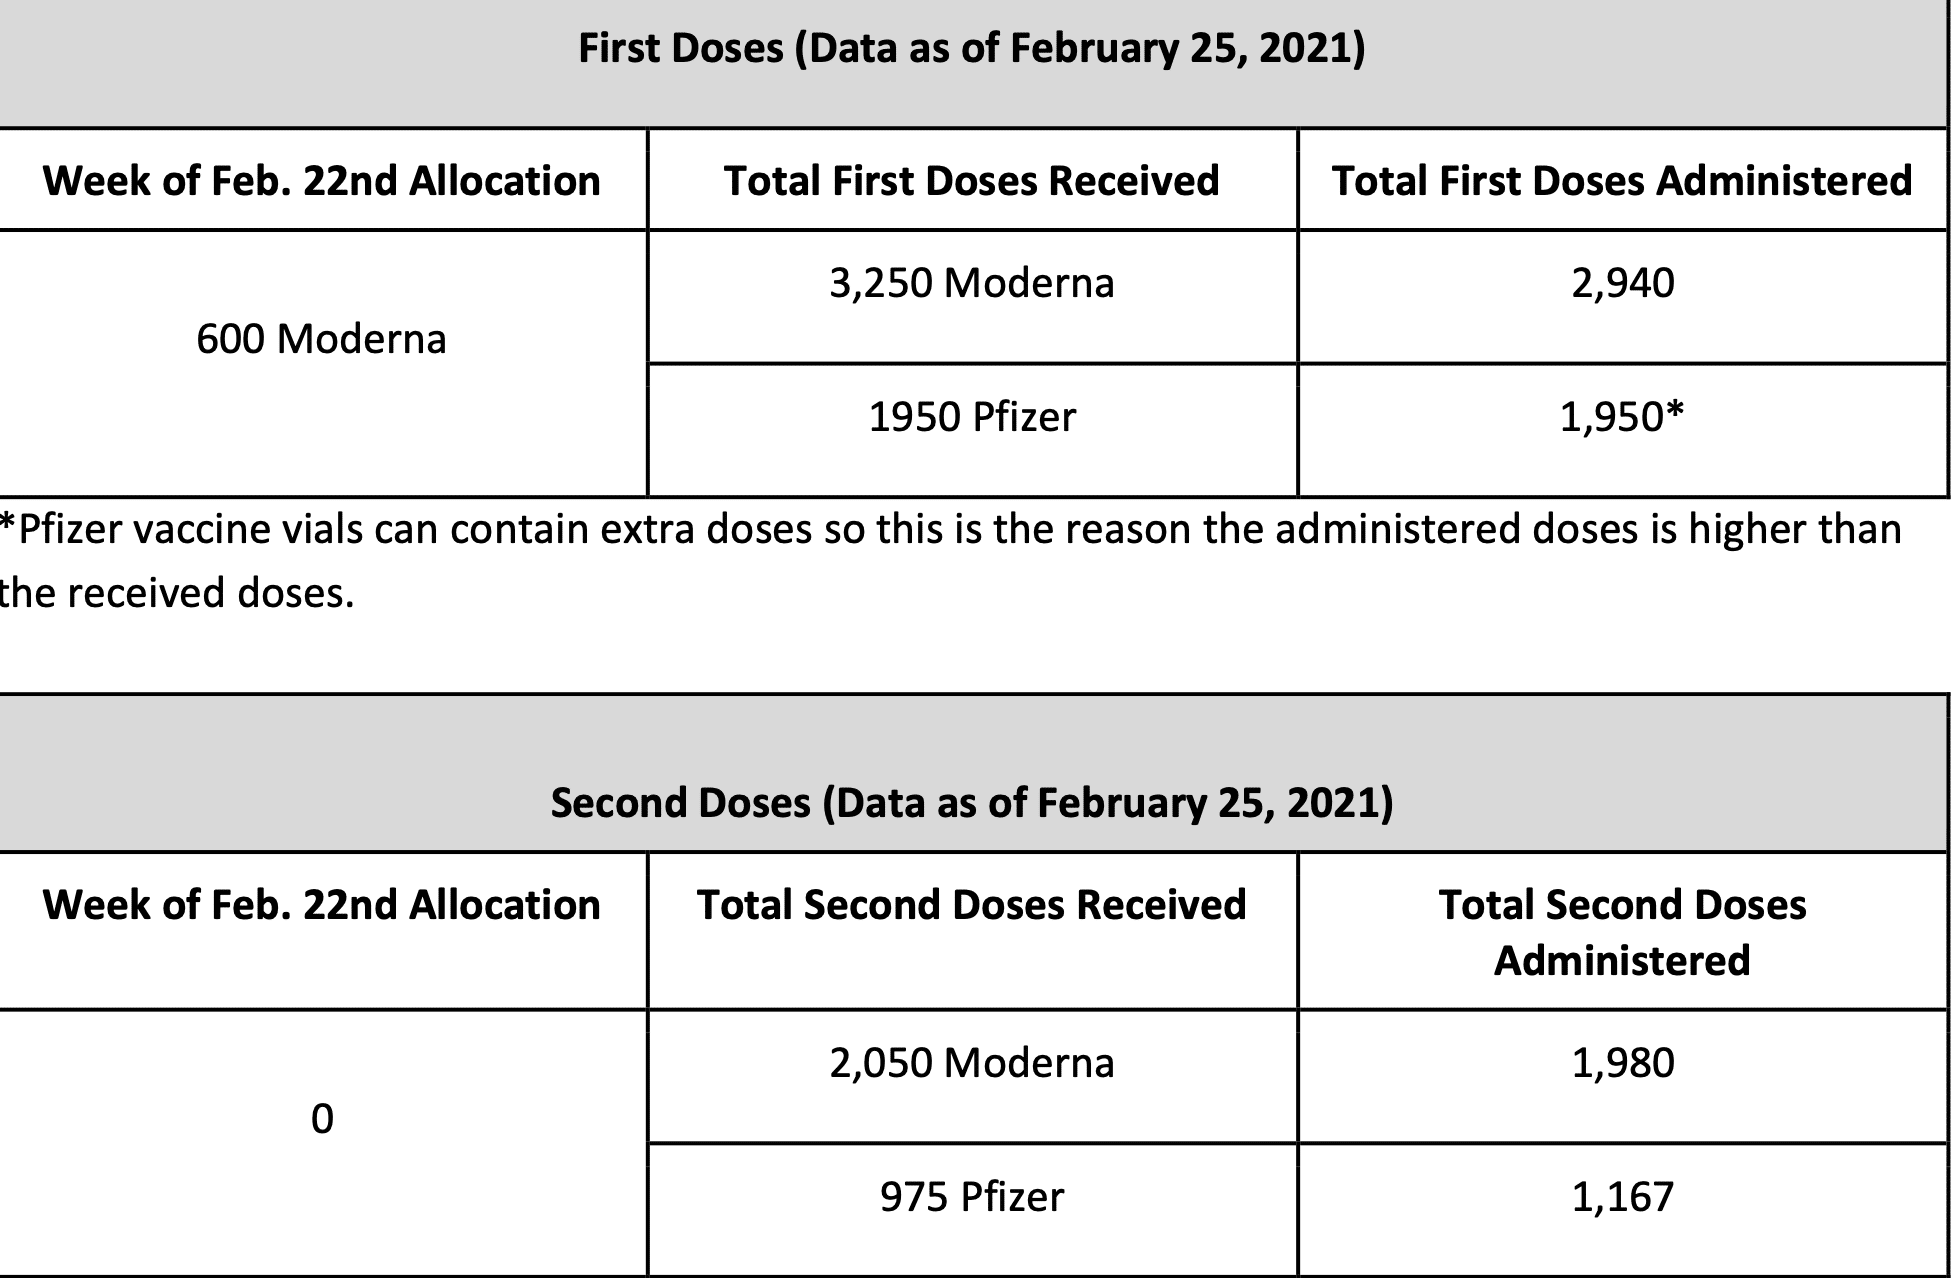 Sunday February 28, 2021 - Appalachian State, Watauga, Alleghany & Ashe COVID-19 Cases Data